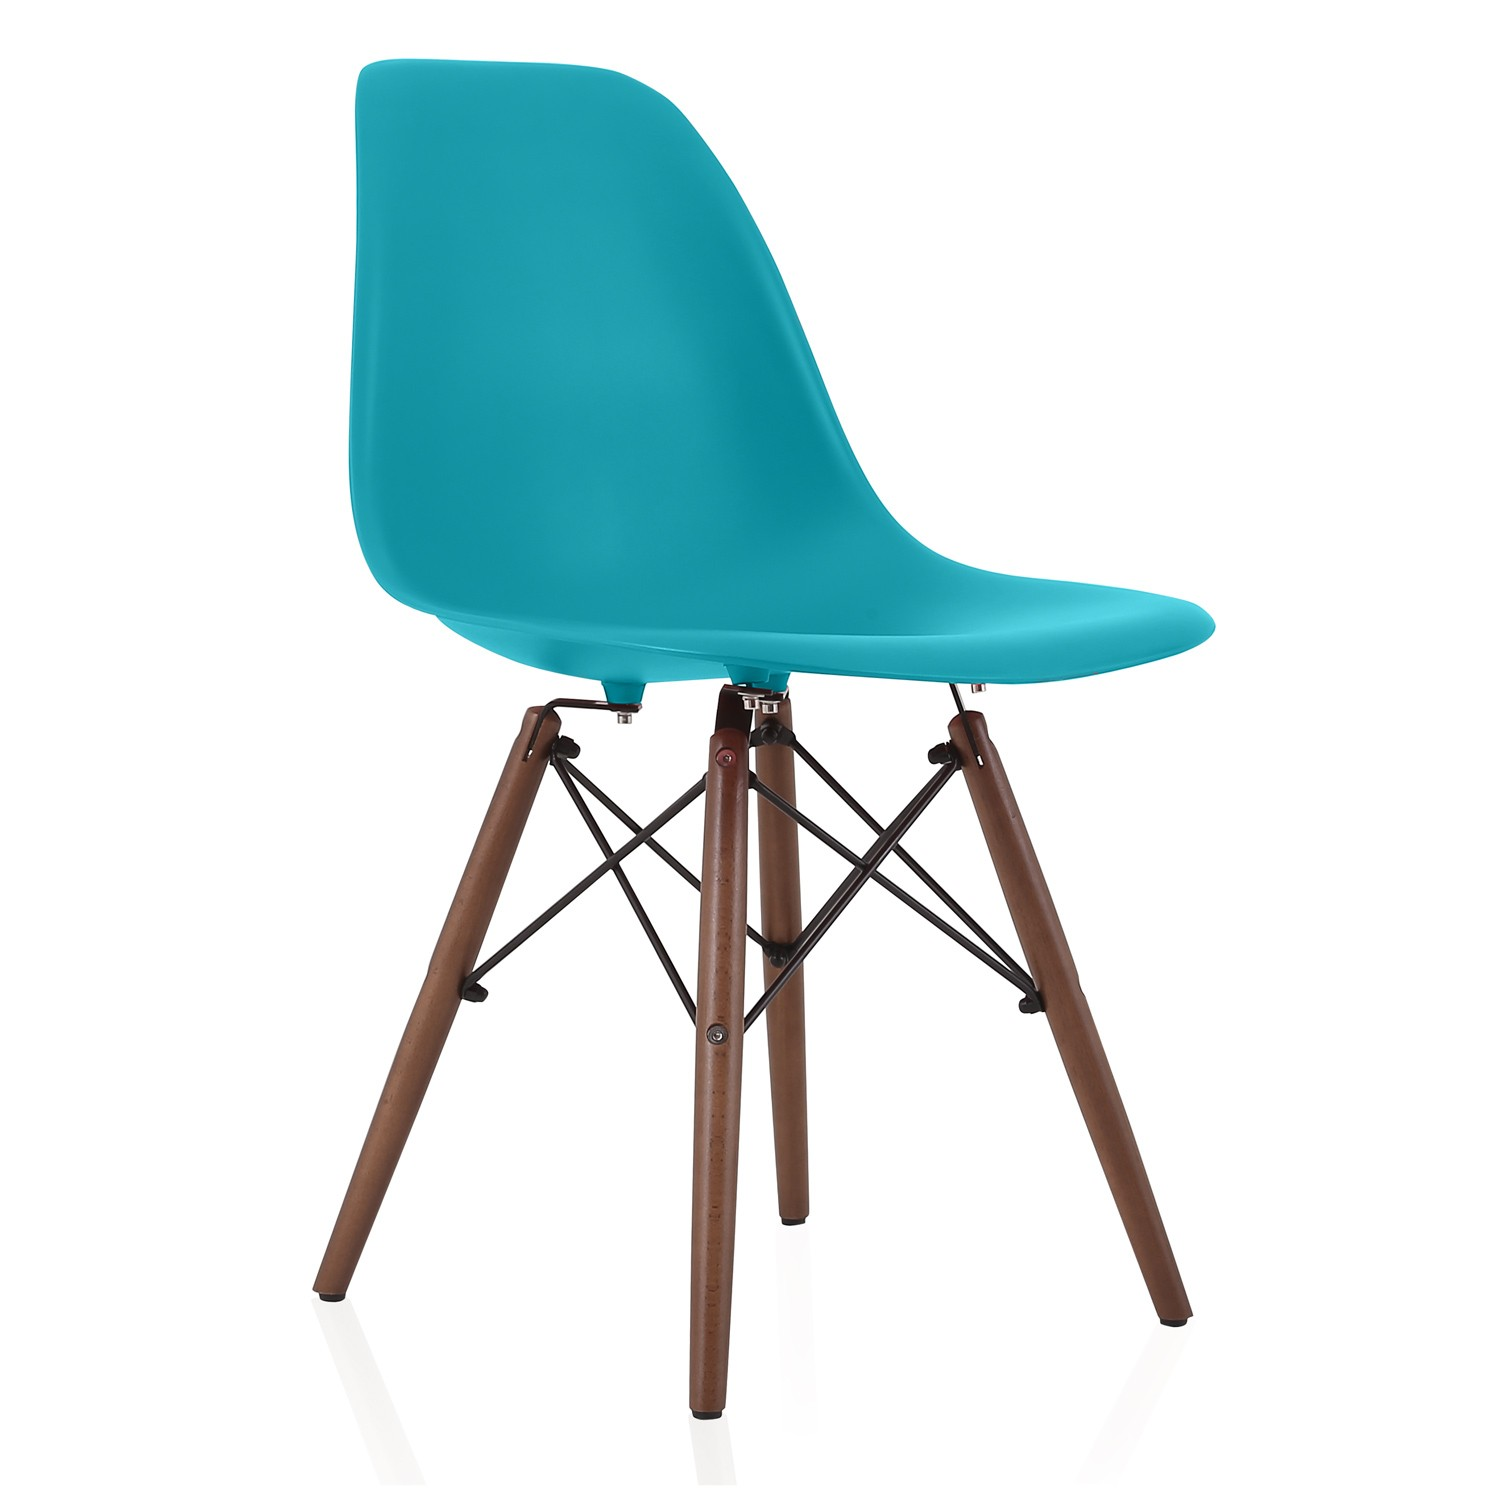 teal colored chairs chair covers to hire uk nature series blue eames style dsw molded plastic dining side with your purchase receive at no cost